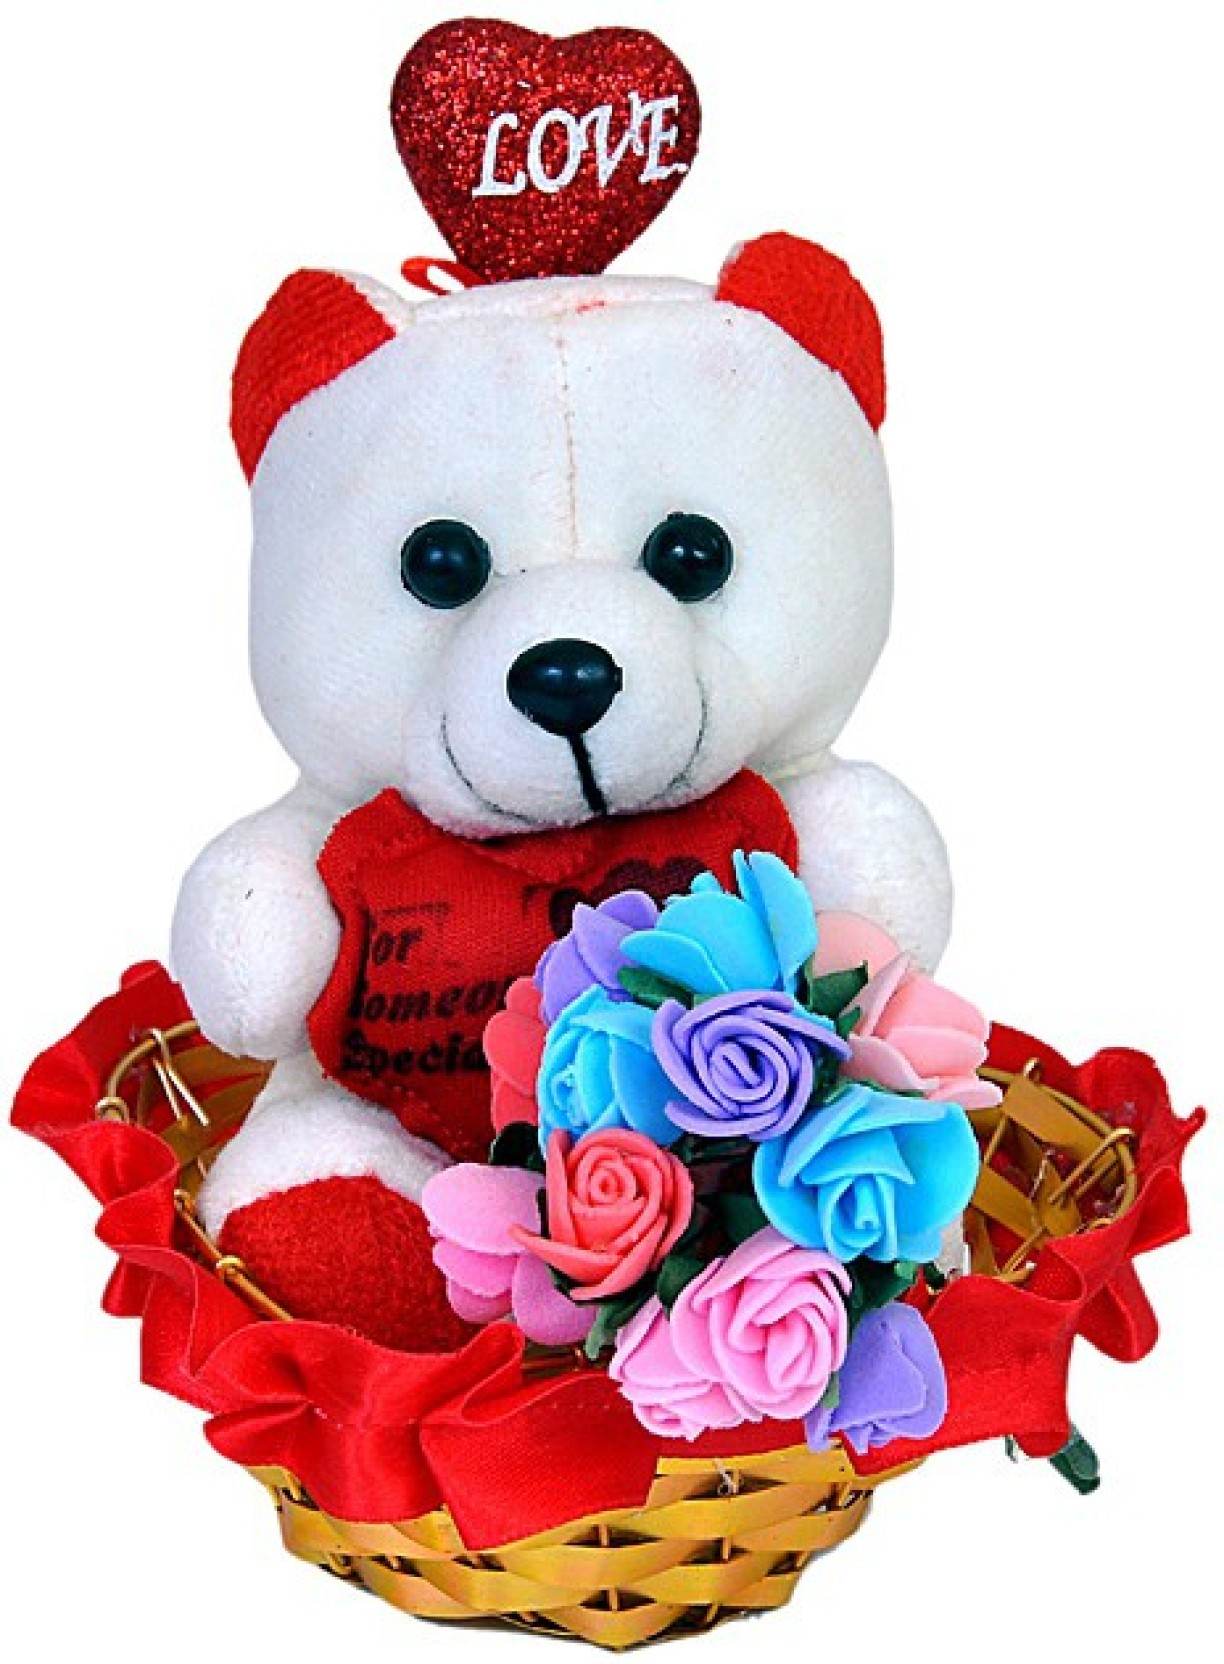 Pingaksh crafty collection cute teddy with heart flower bouquet in home izmirmasajfo